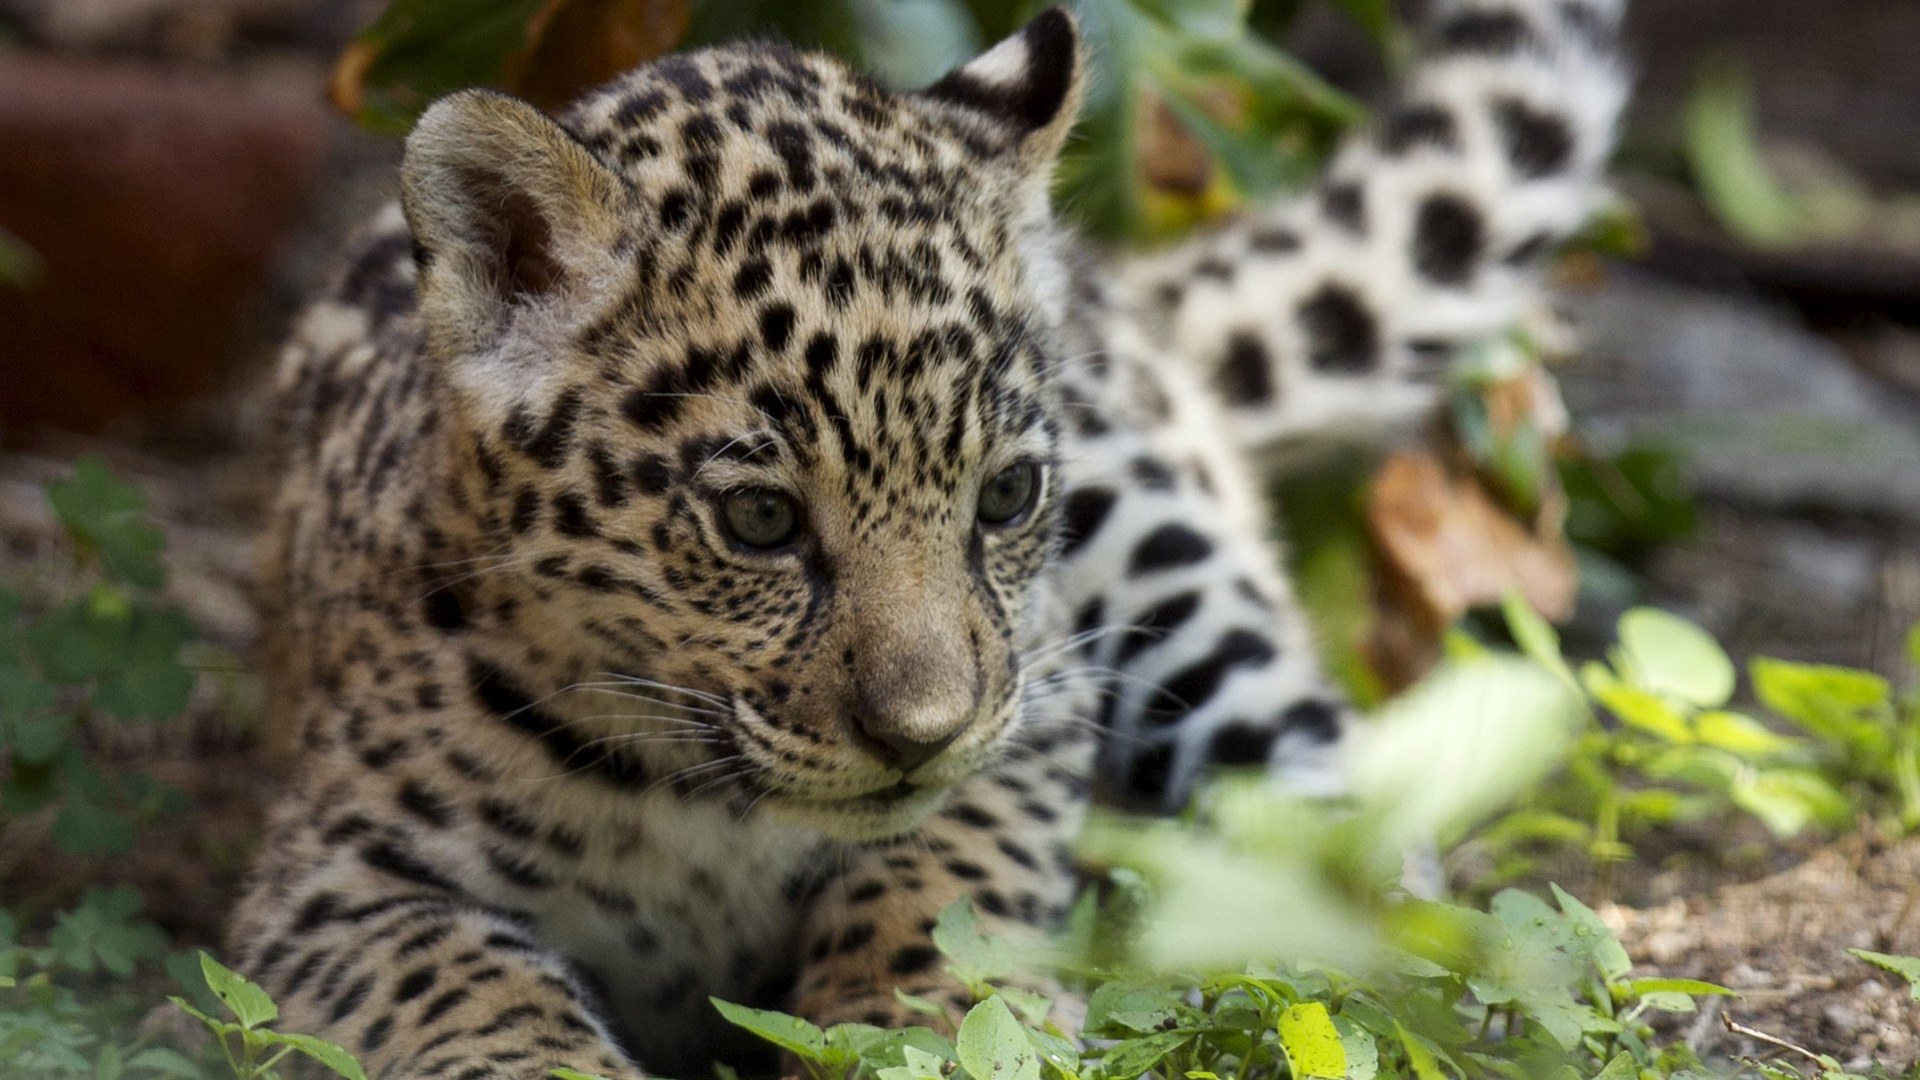 Image: A jaguar cub is pictured at the Quito Zoo in Guaylabamba